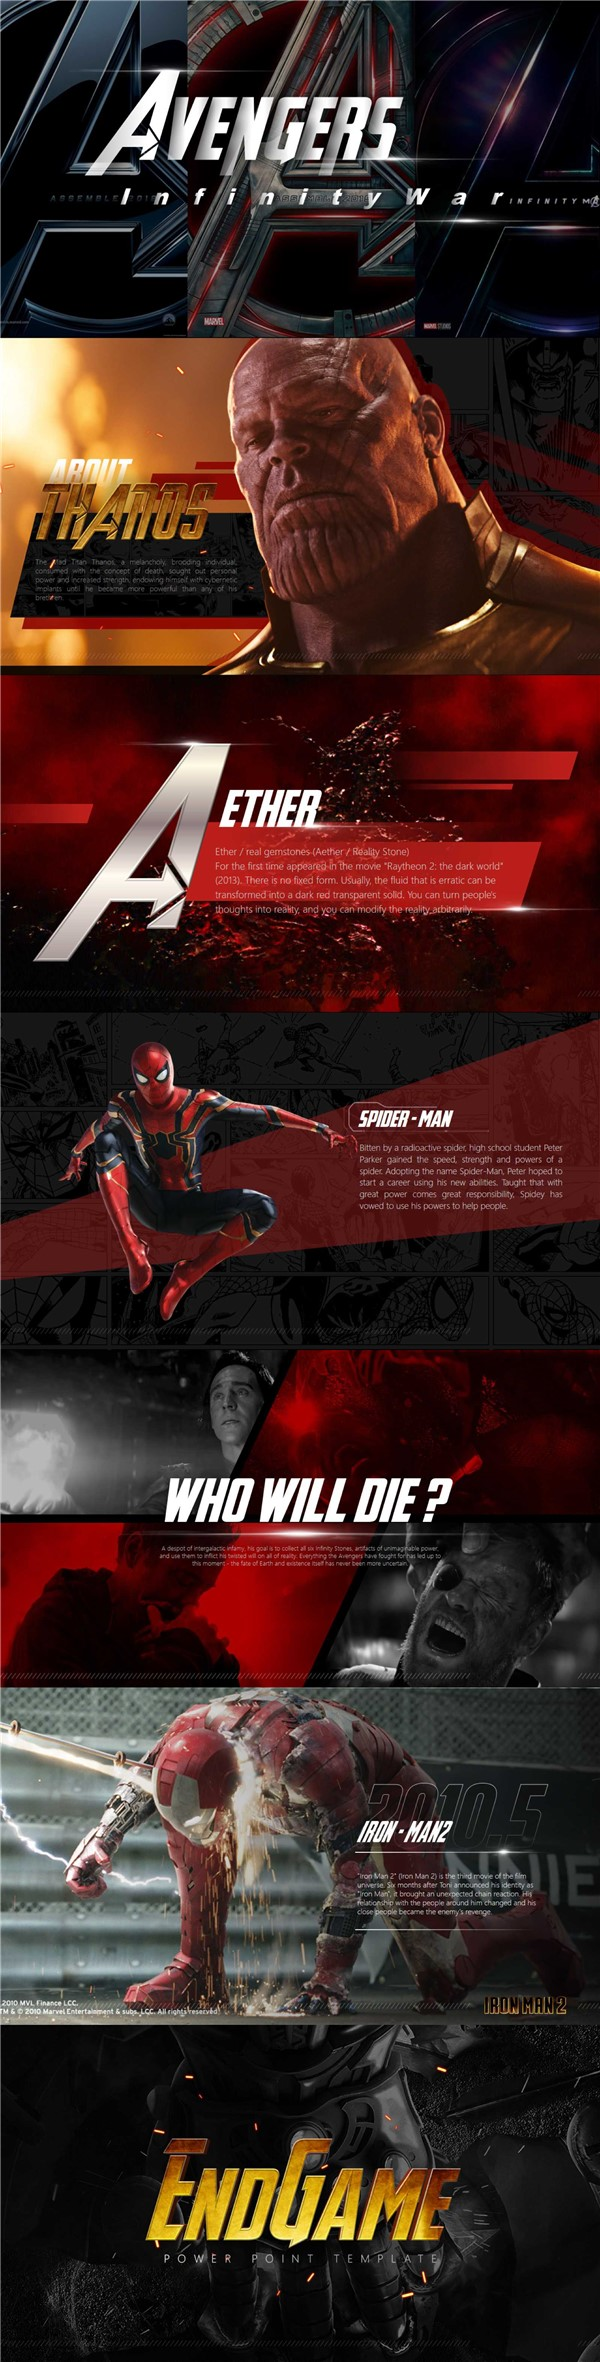 Avengers PowerPoint Template | 🐝 Free Bee